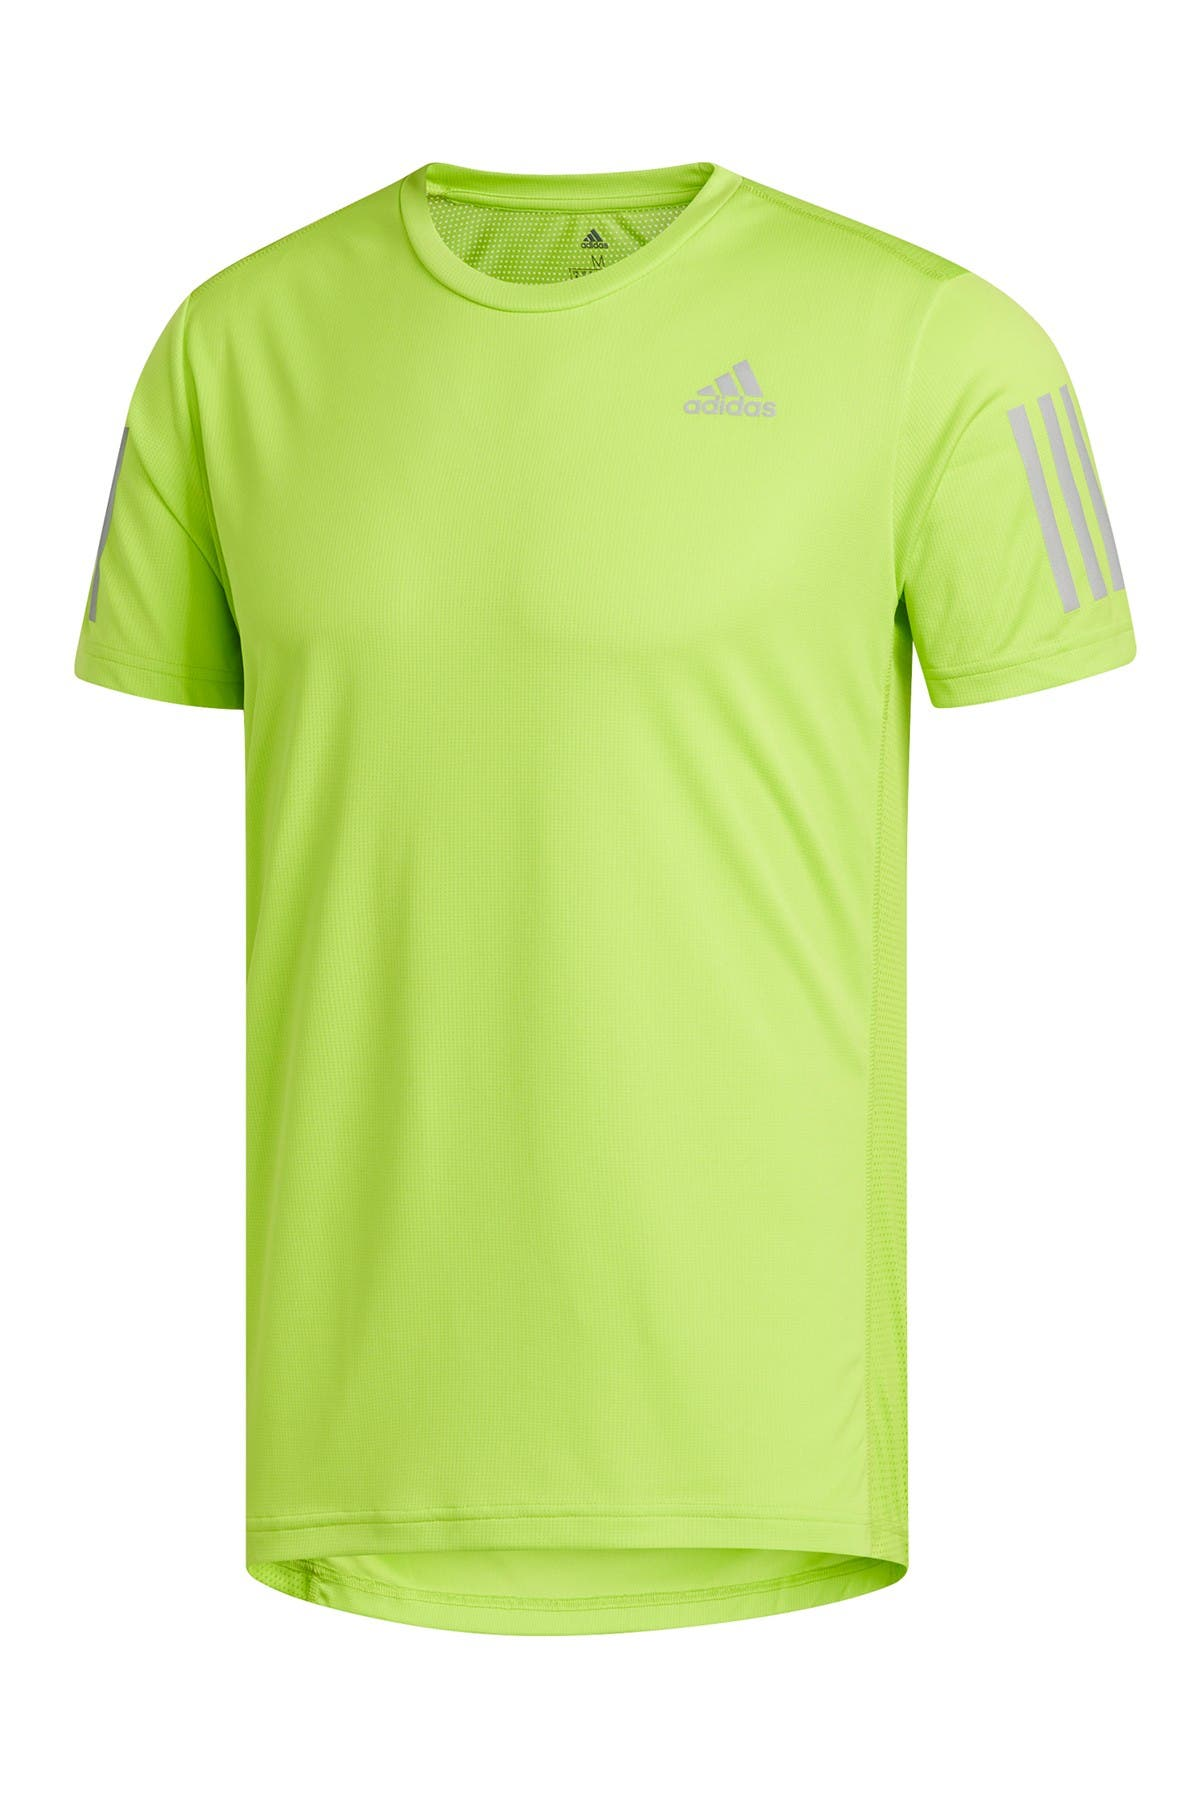 Image of adidas Own The Run T- Shirt